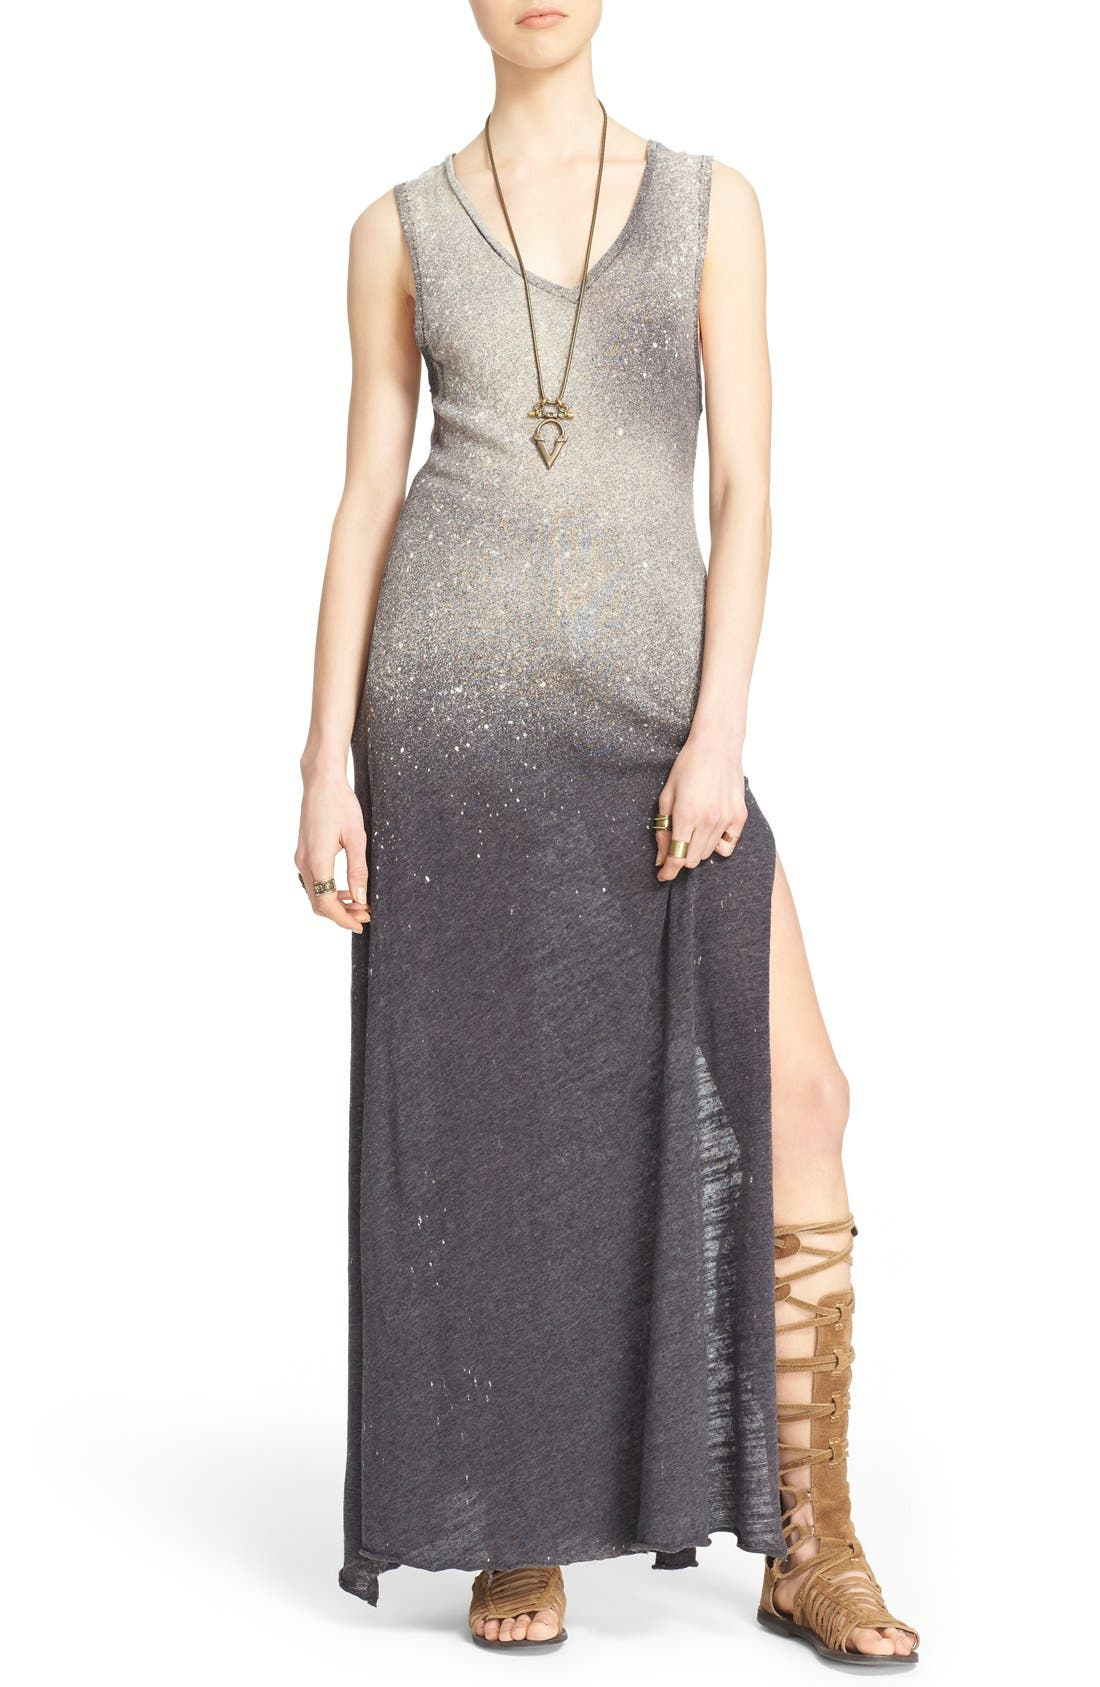 FREE PEOPLE 'Galaxy' Maxi Dress, Main, color, 001